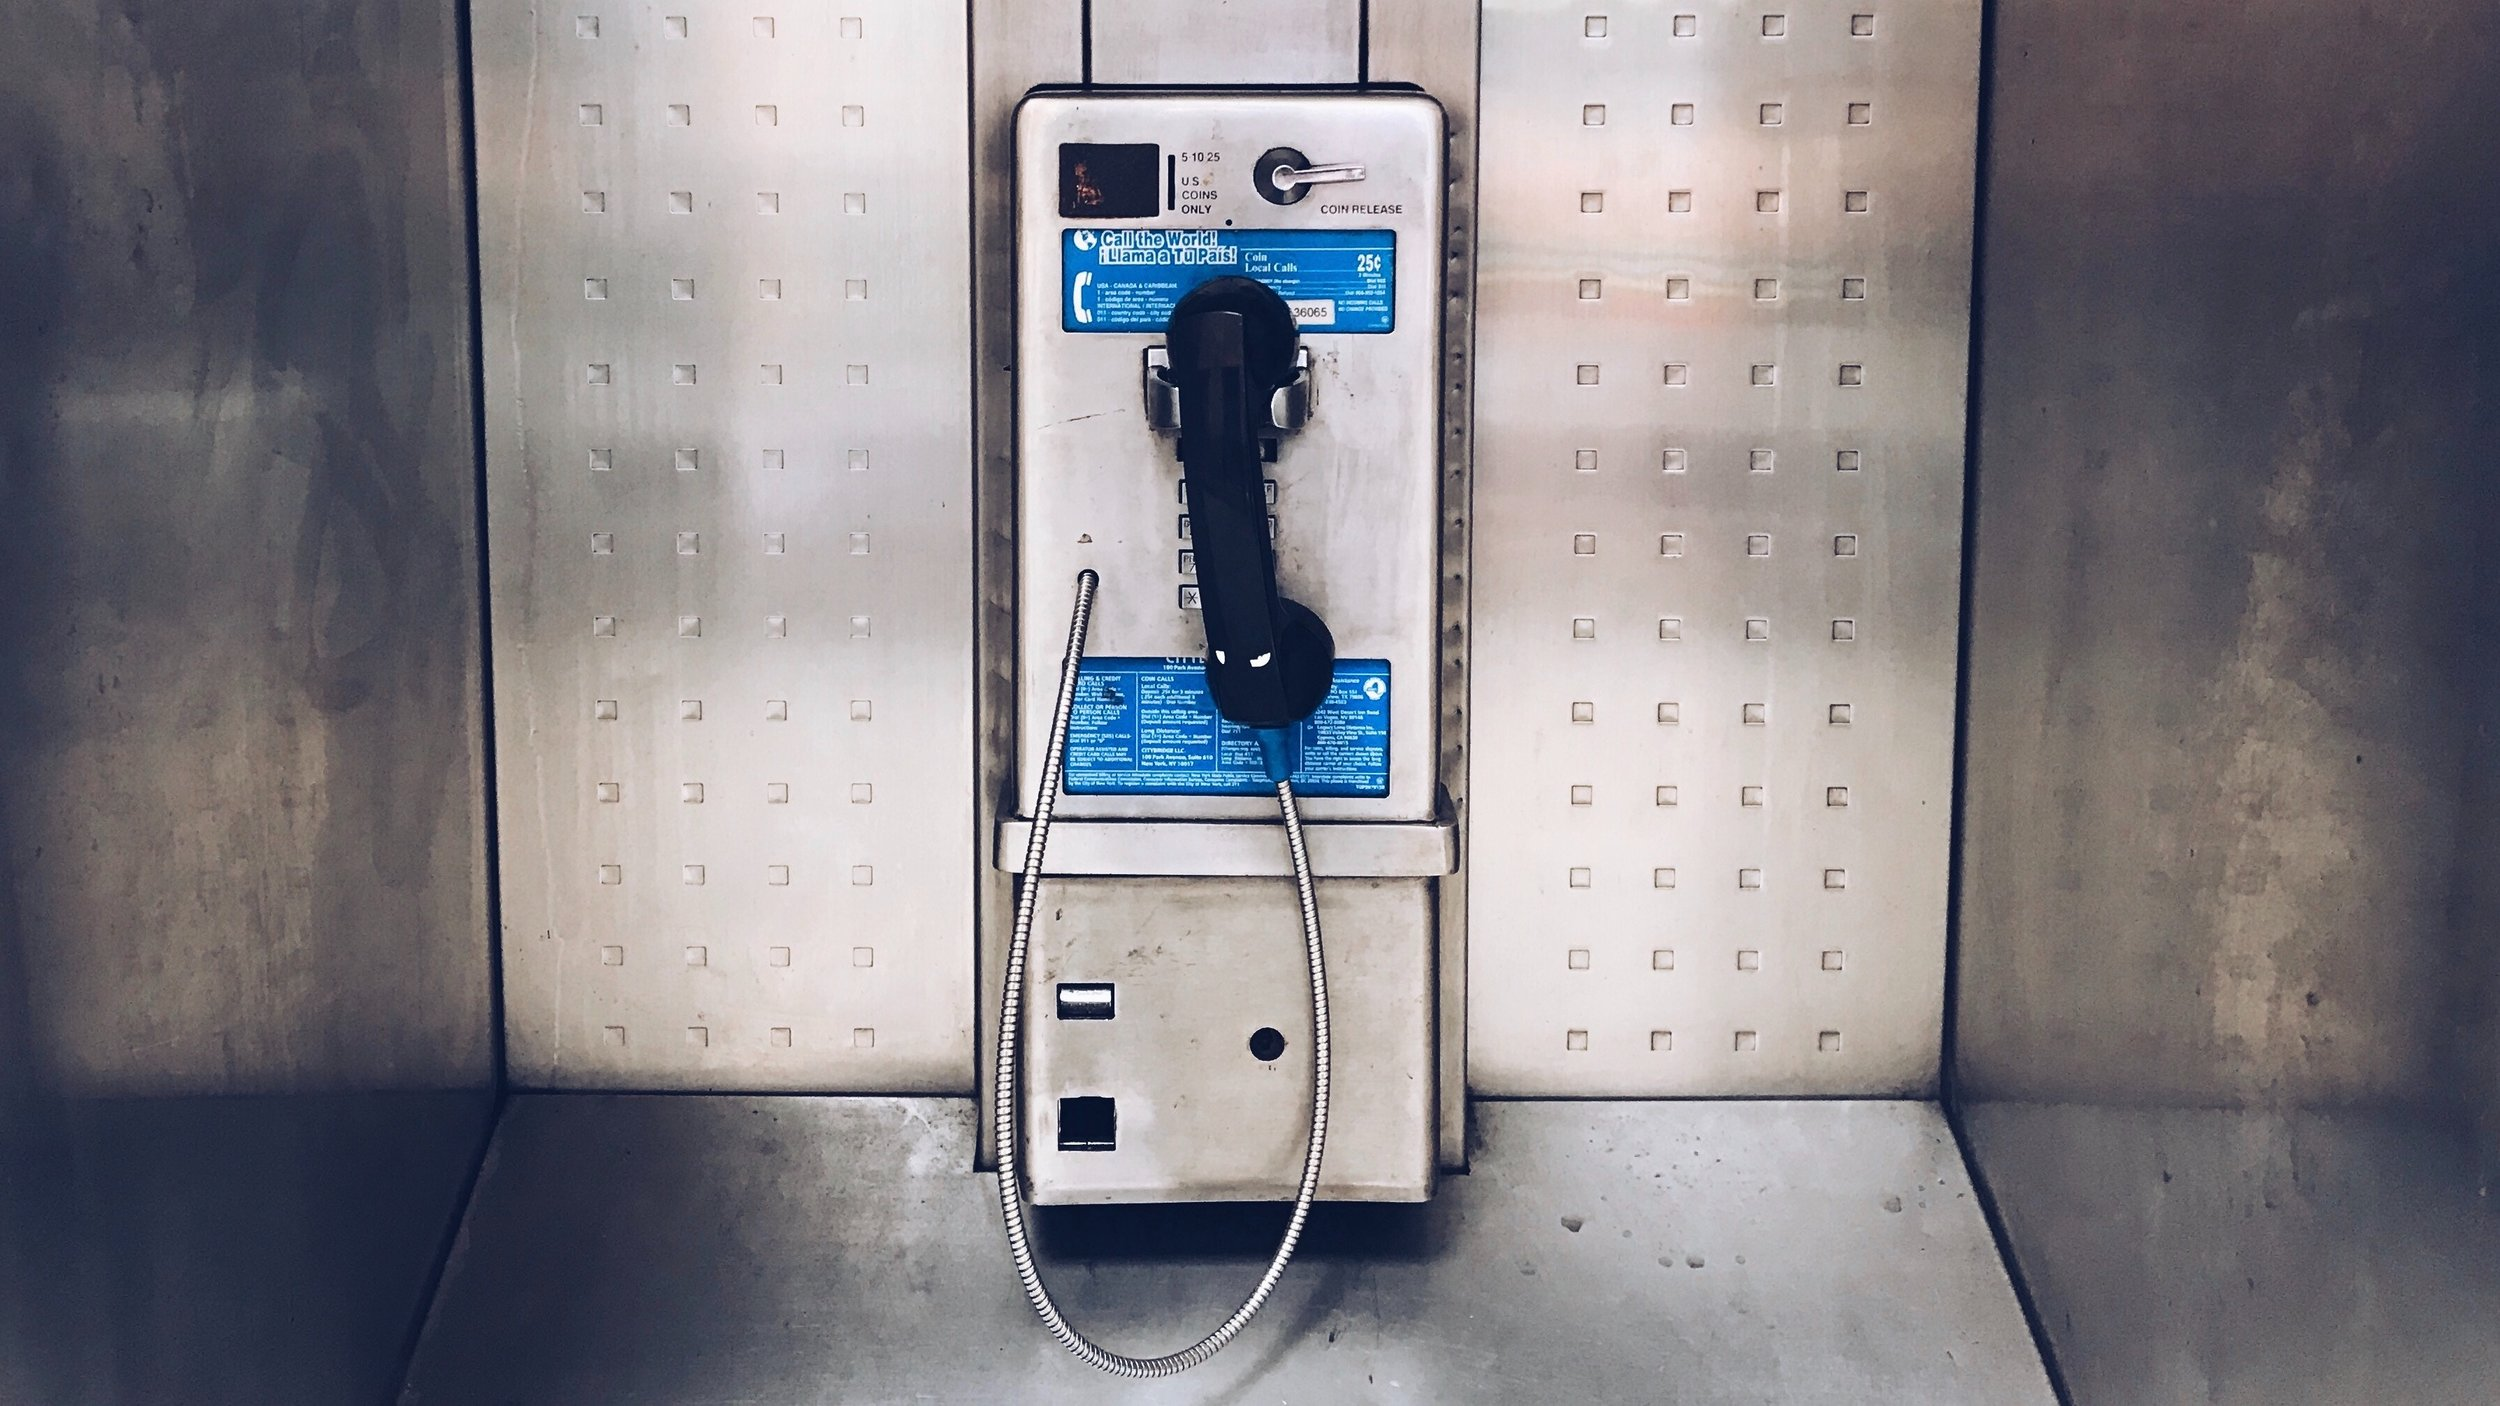 piublc phone - one.jpg